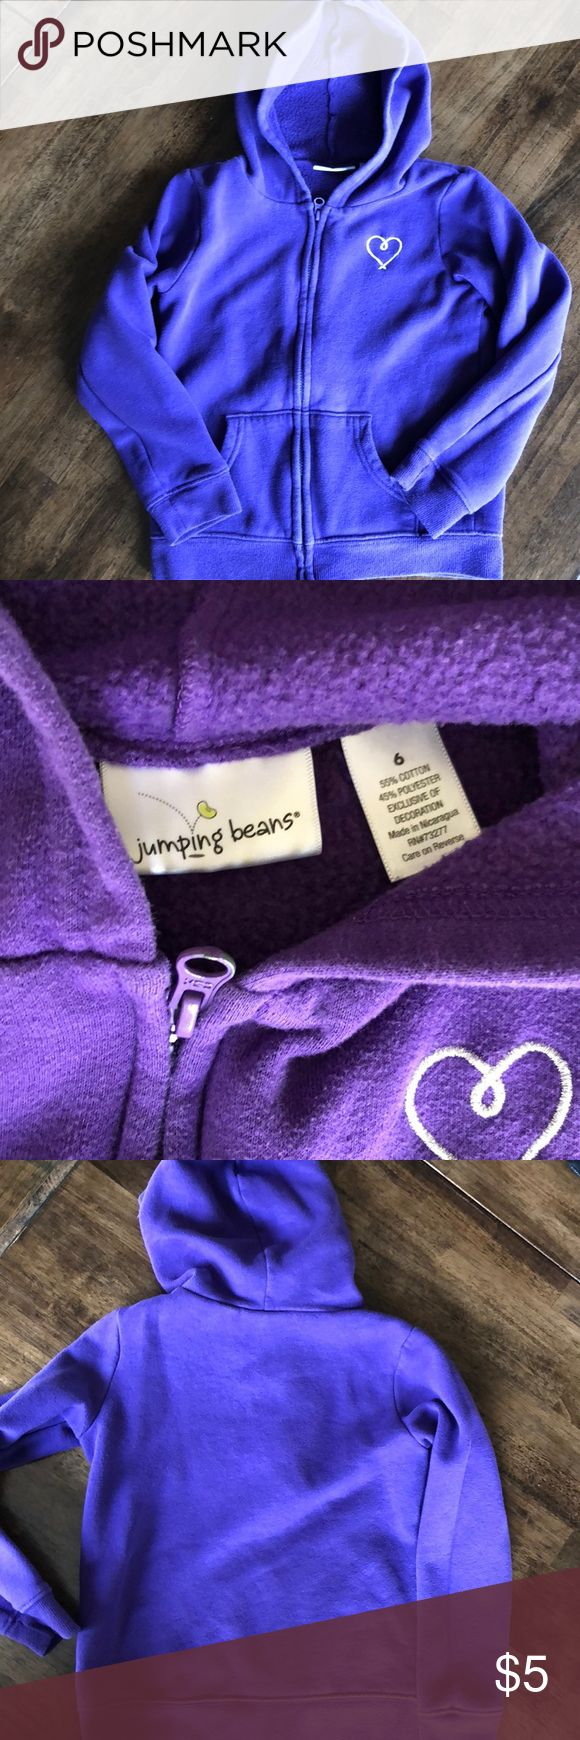 Purple zip up hooded sweatshirt Basic purple zip up sweatshirt, worn but great condition. Close up picture is a better indicator of the purple color. Jumping Beans Shirts & Tops Sweatshirts & Hoodies